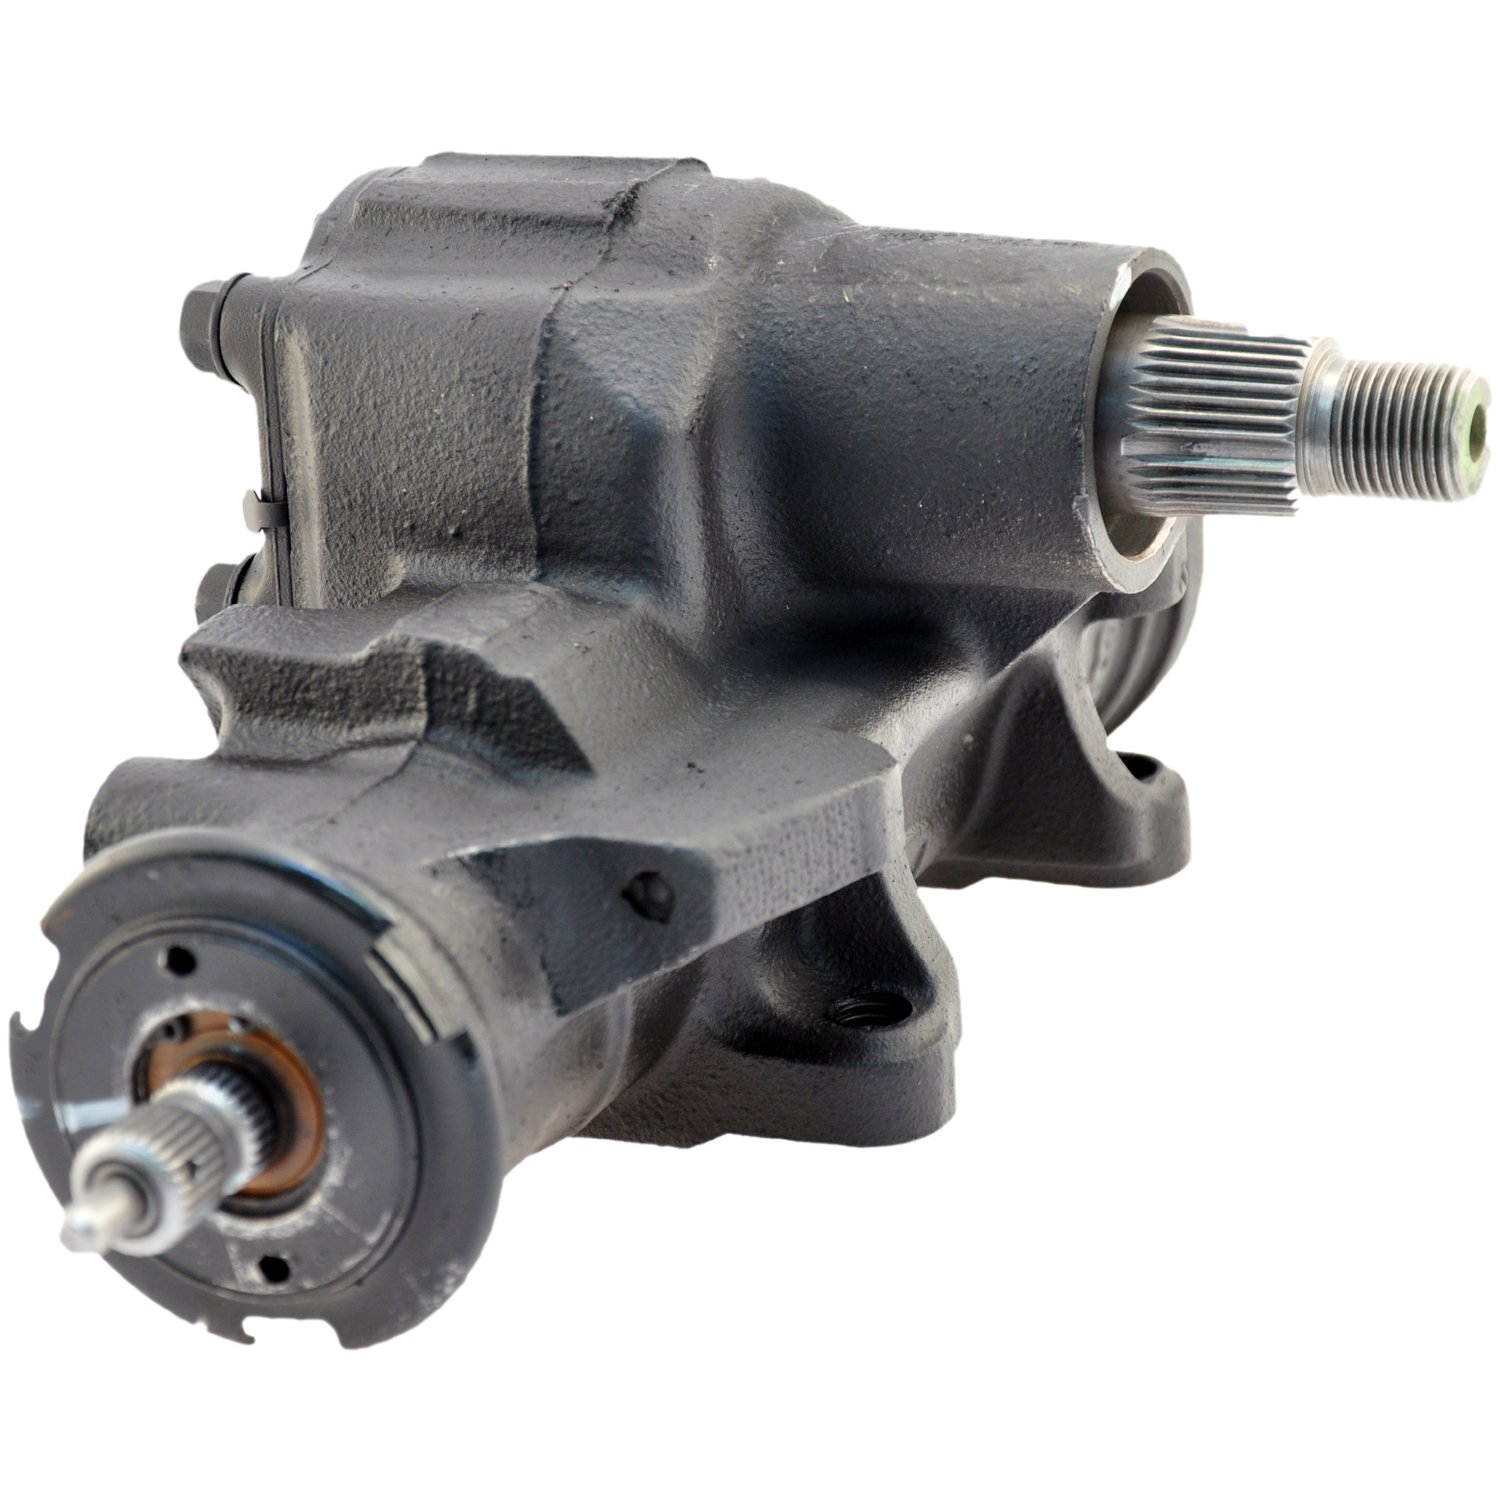 ACDelco 36G0136 Professional Steering Gear without Pitman Arm Remanufactured